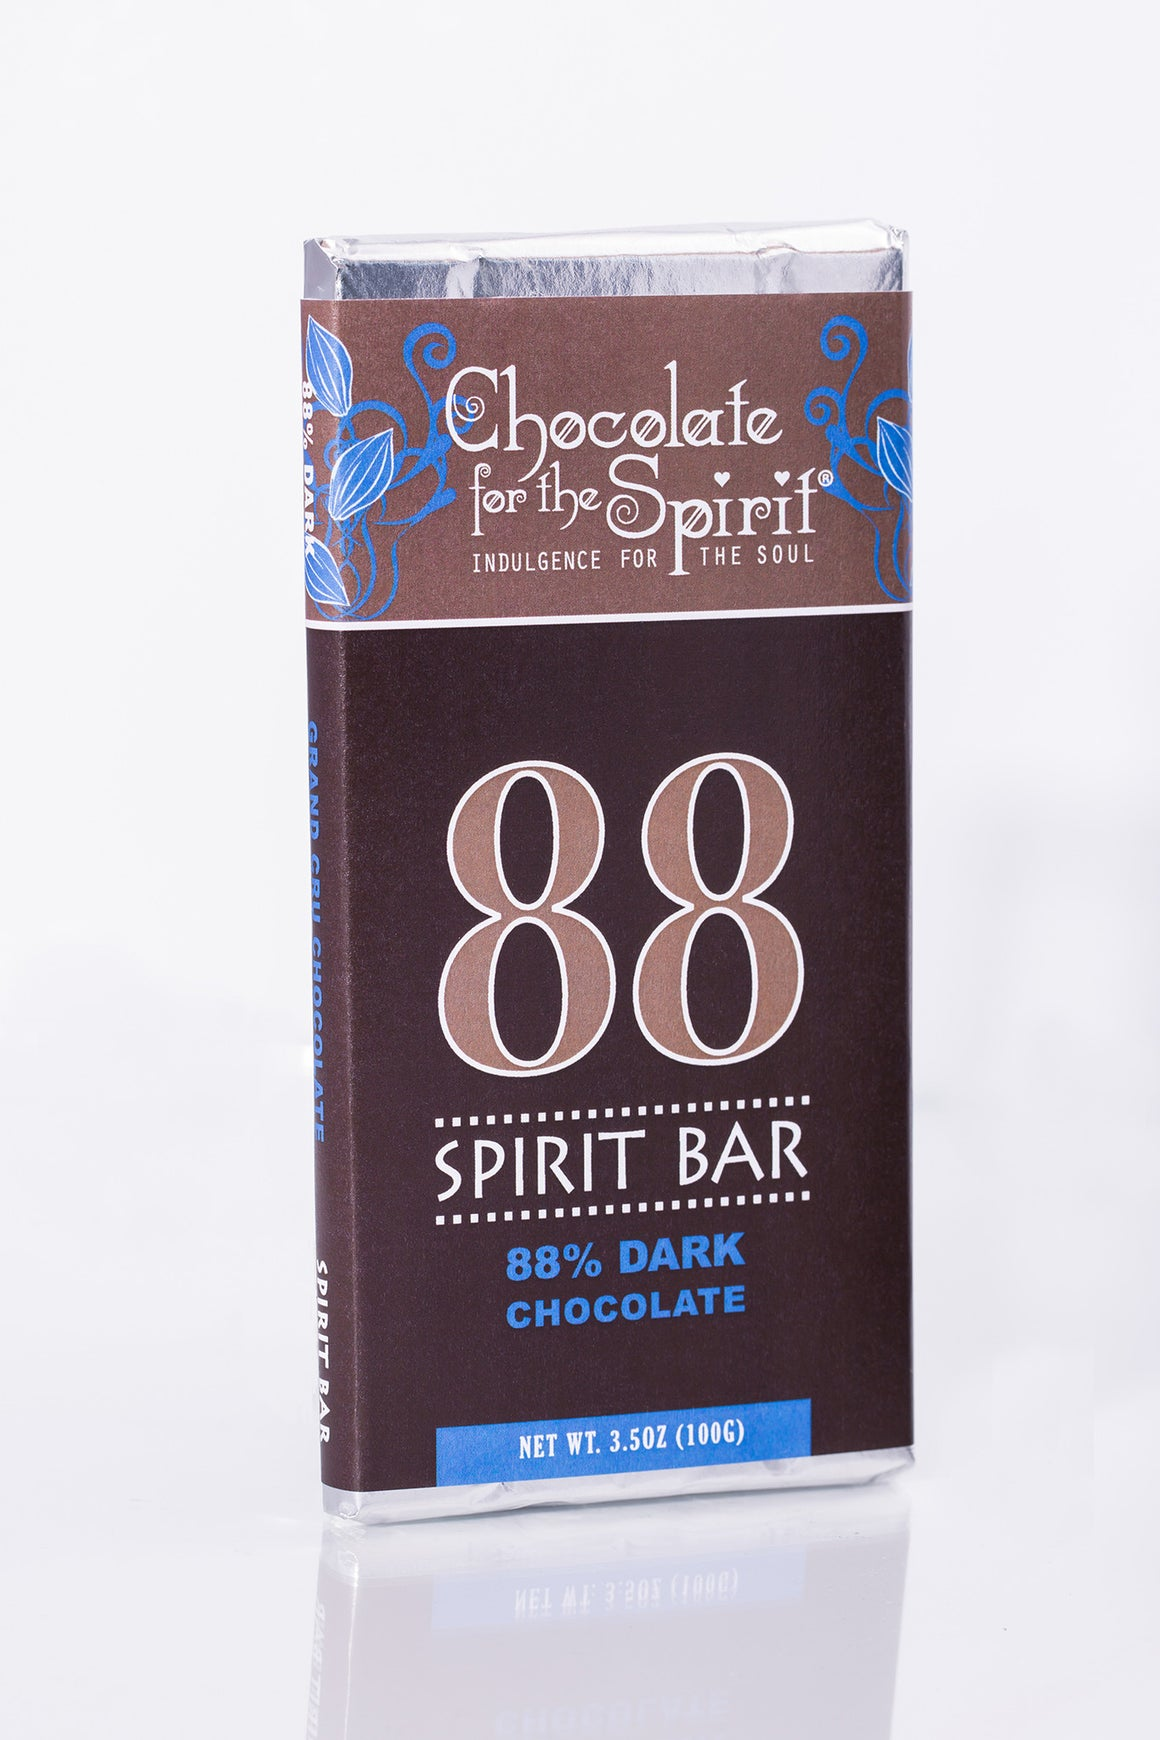 88 Spirit Bar - 88% Dark Chocolate Bar (Grand Cru, single-origin Venezuela)